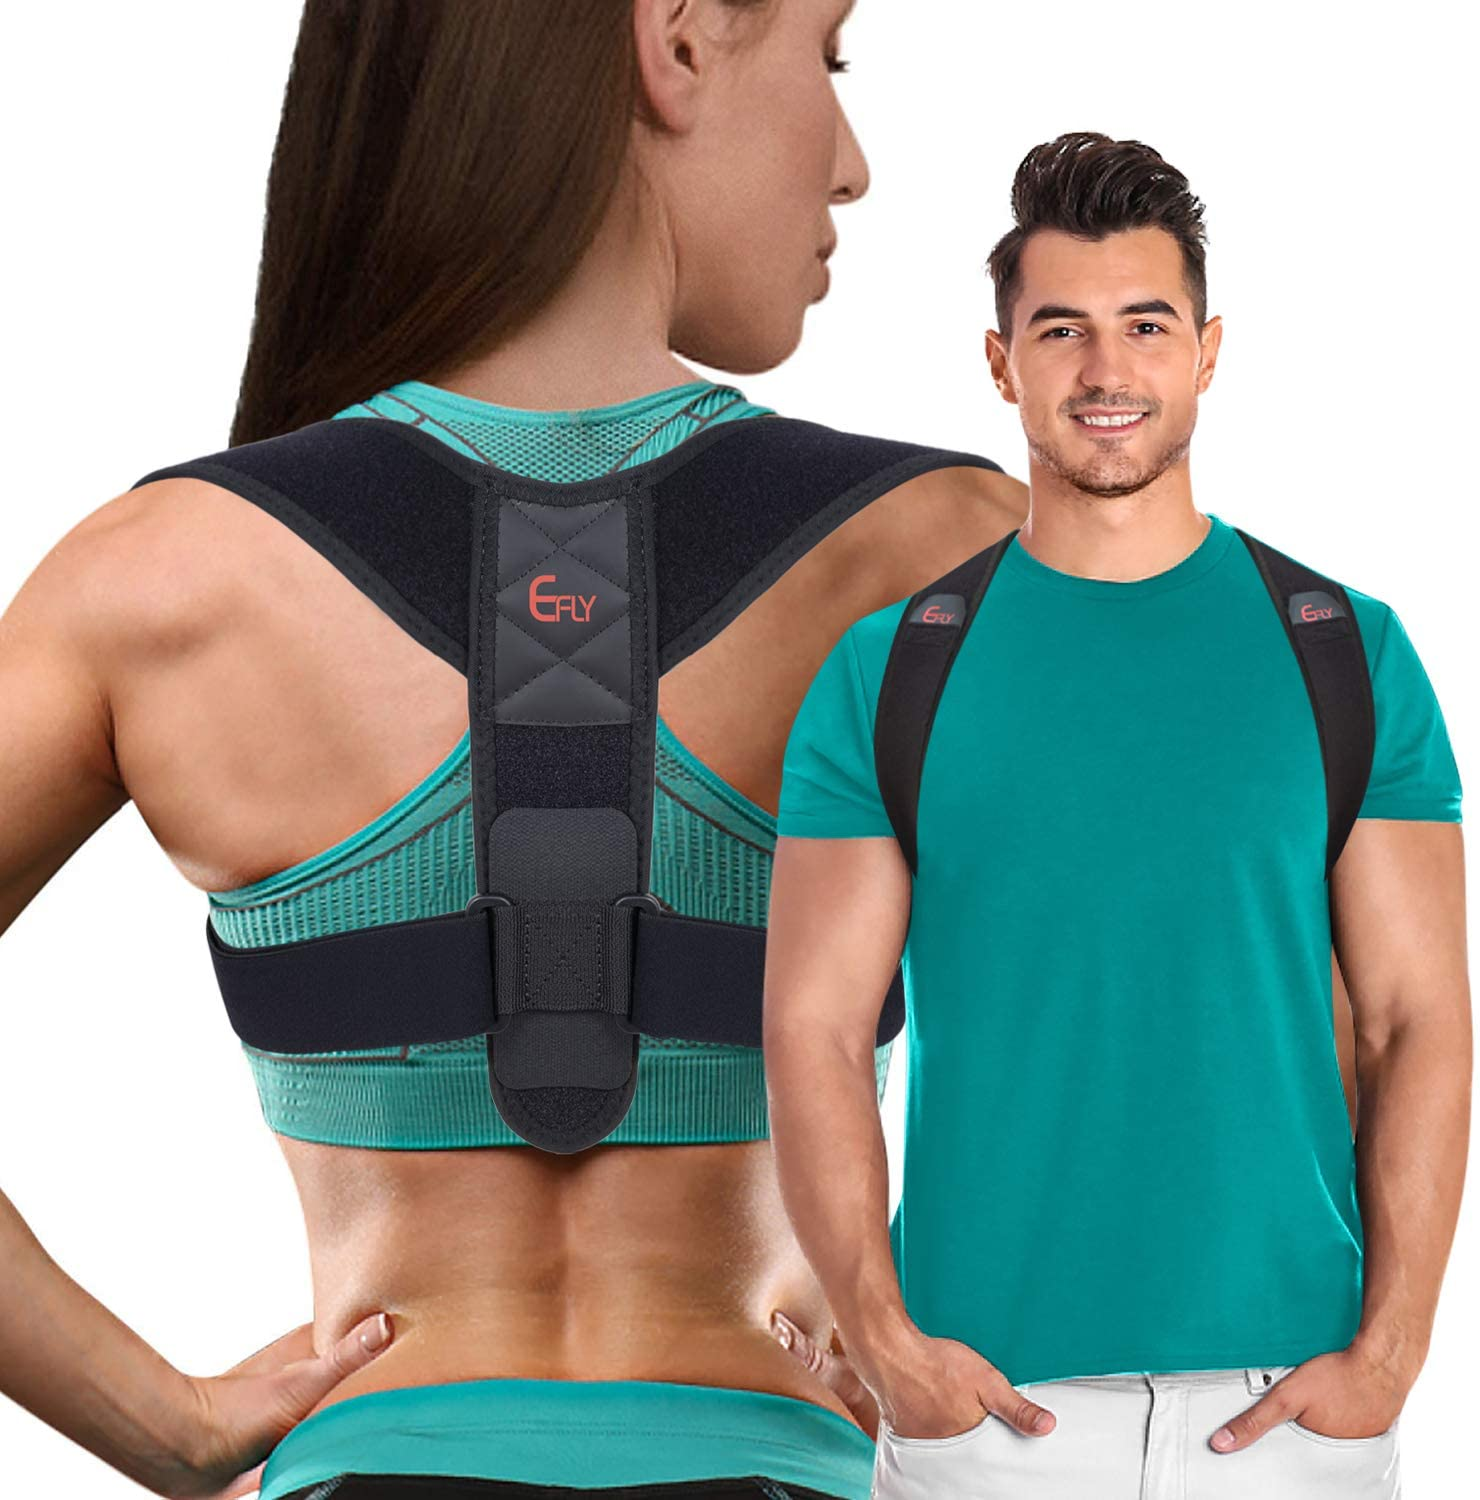 (2020 New) Posture Corrector for Women Men - Posture Brace Adjustable Back Straightener, Comfortable Upper Clavicle Support Device for Thoracic Kyphosis and Back Pain Relief (L(40-50))